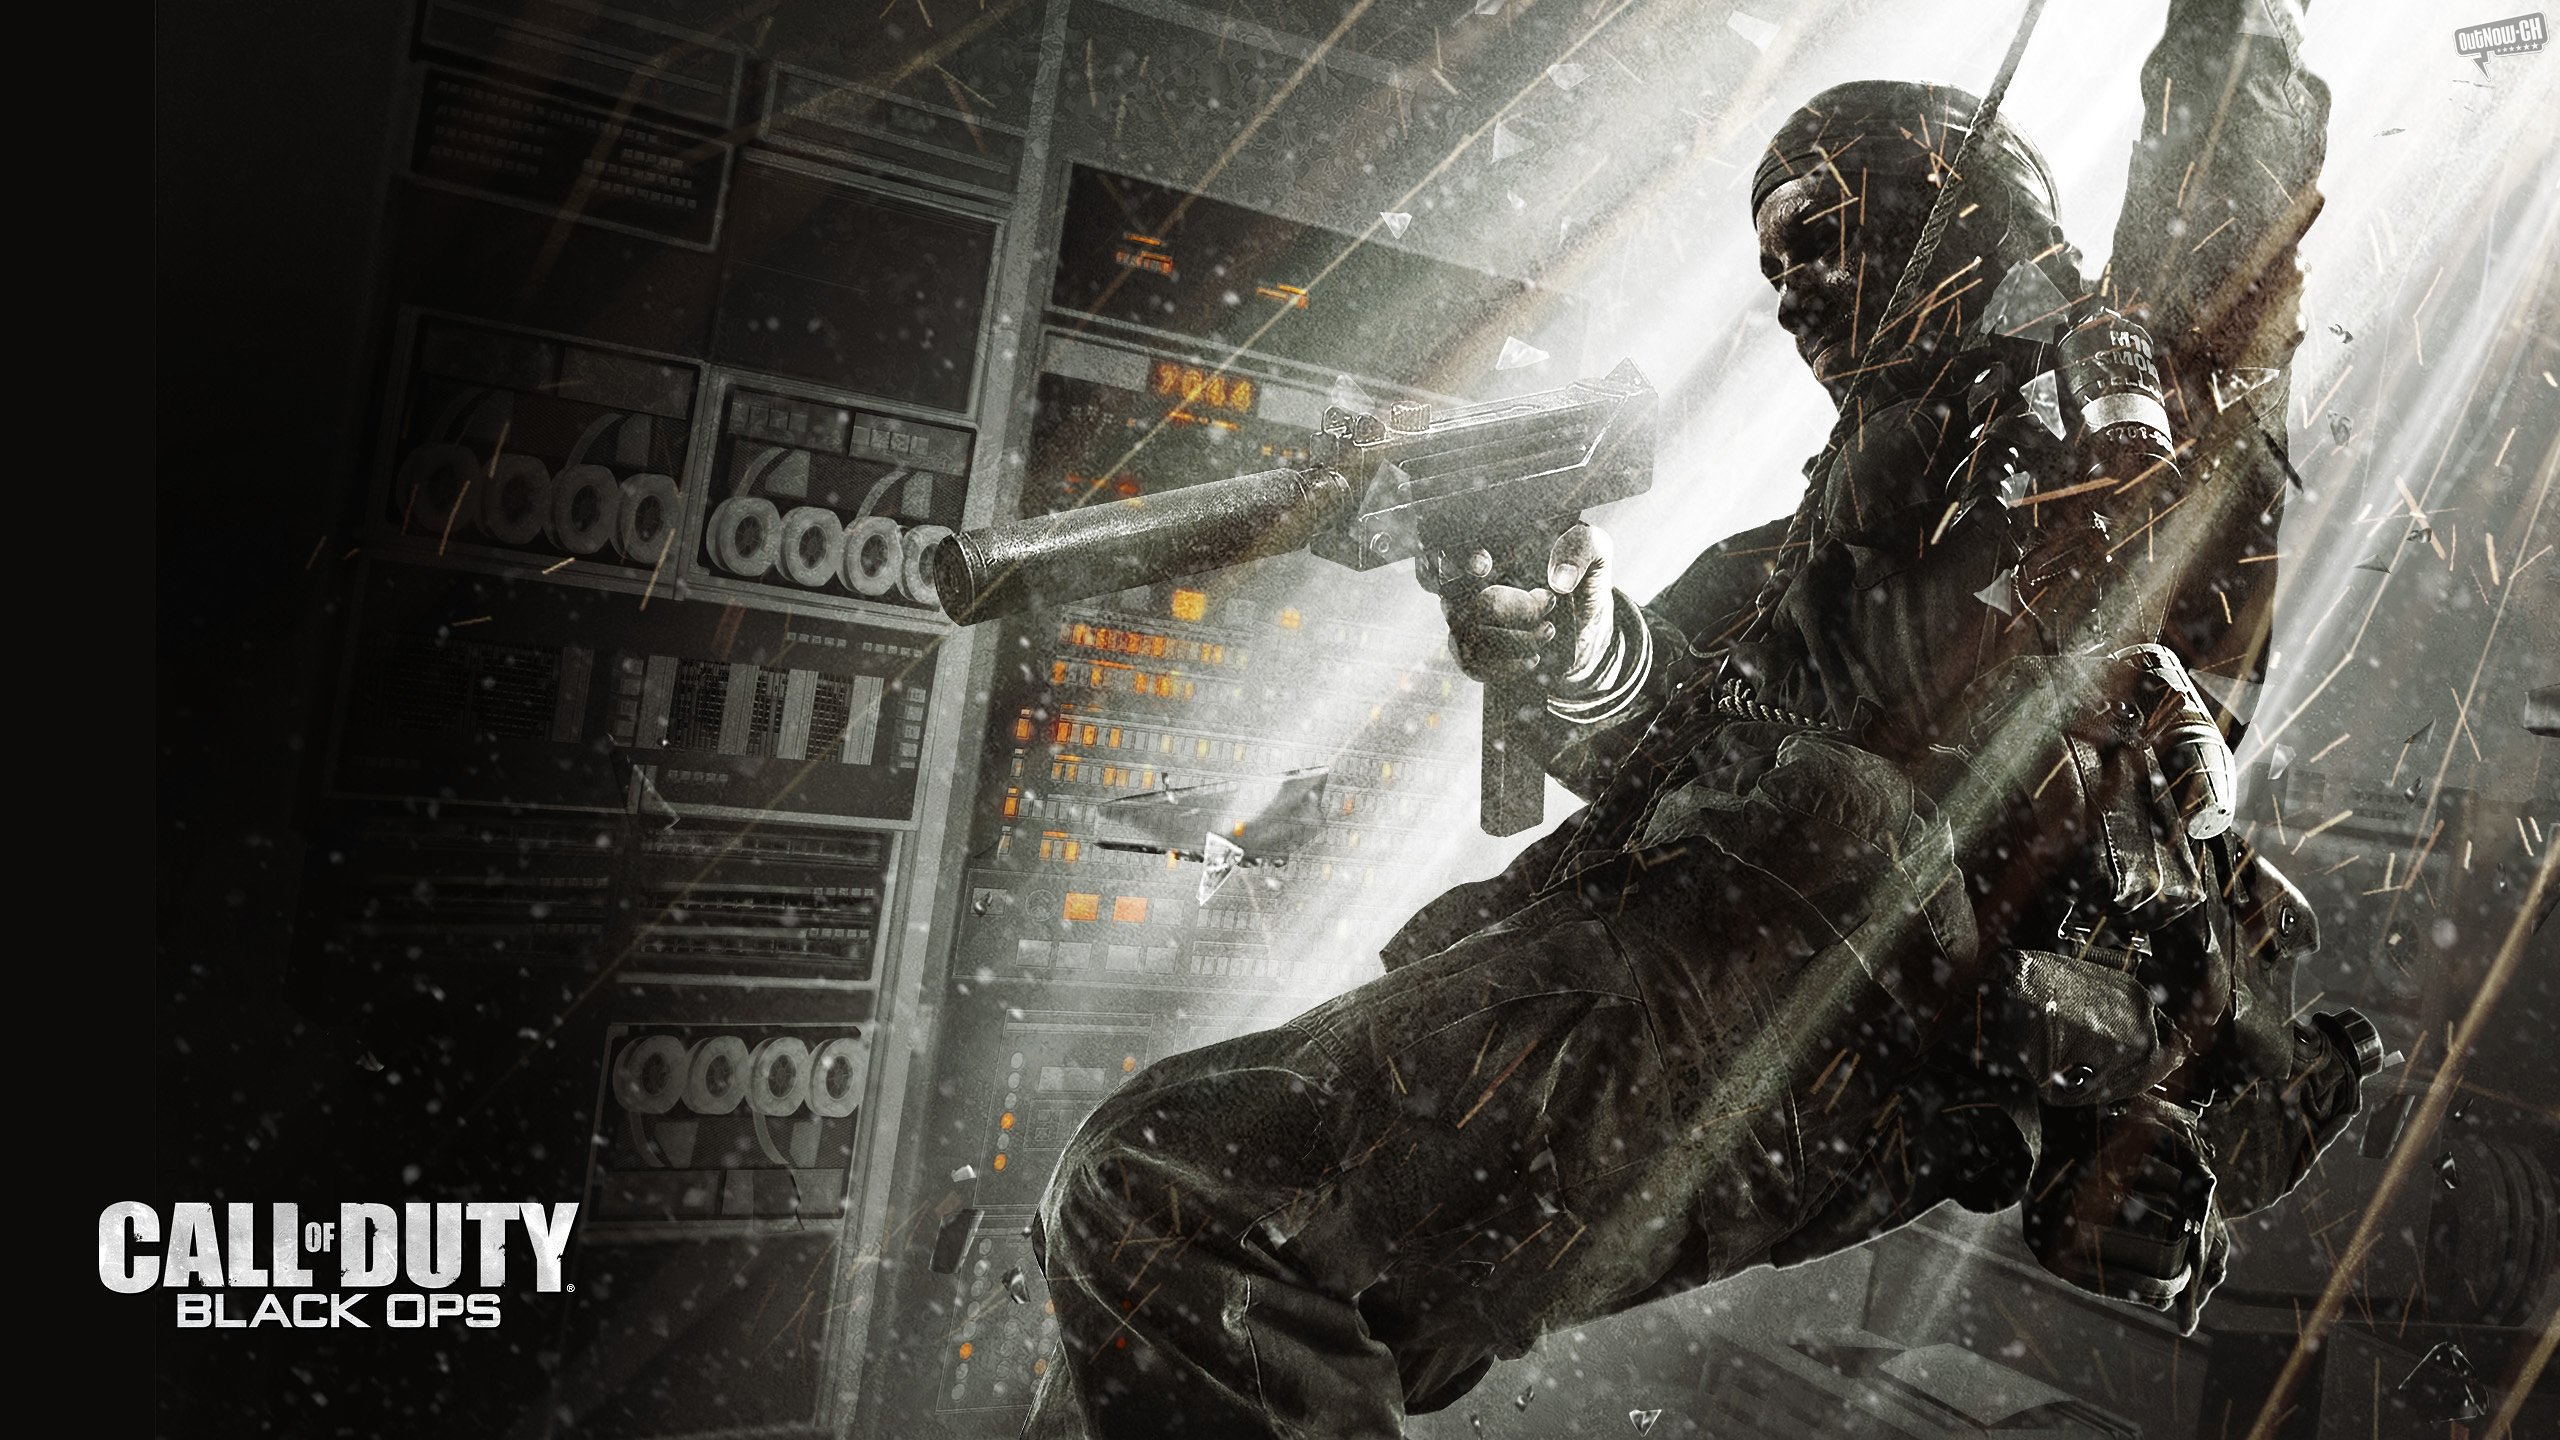 Free Download 2560x1440 Call Of Duty Black Ops Desktop Pc And Mac